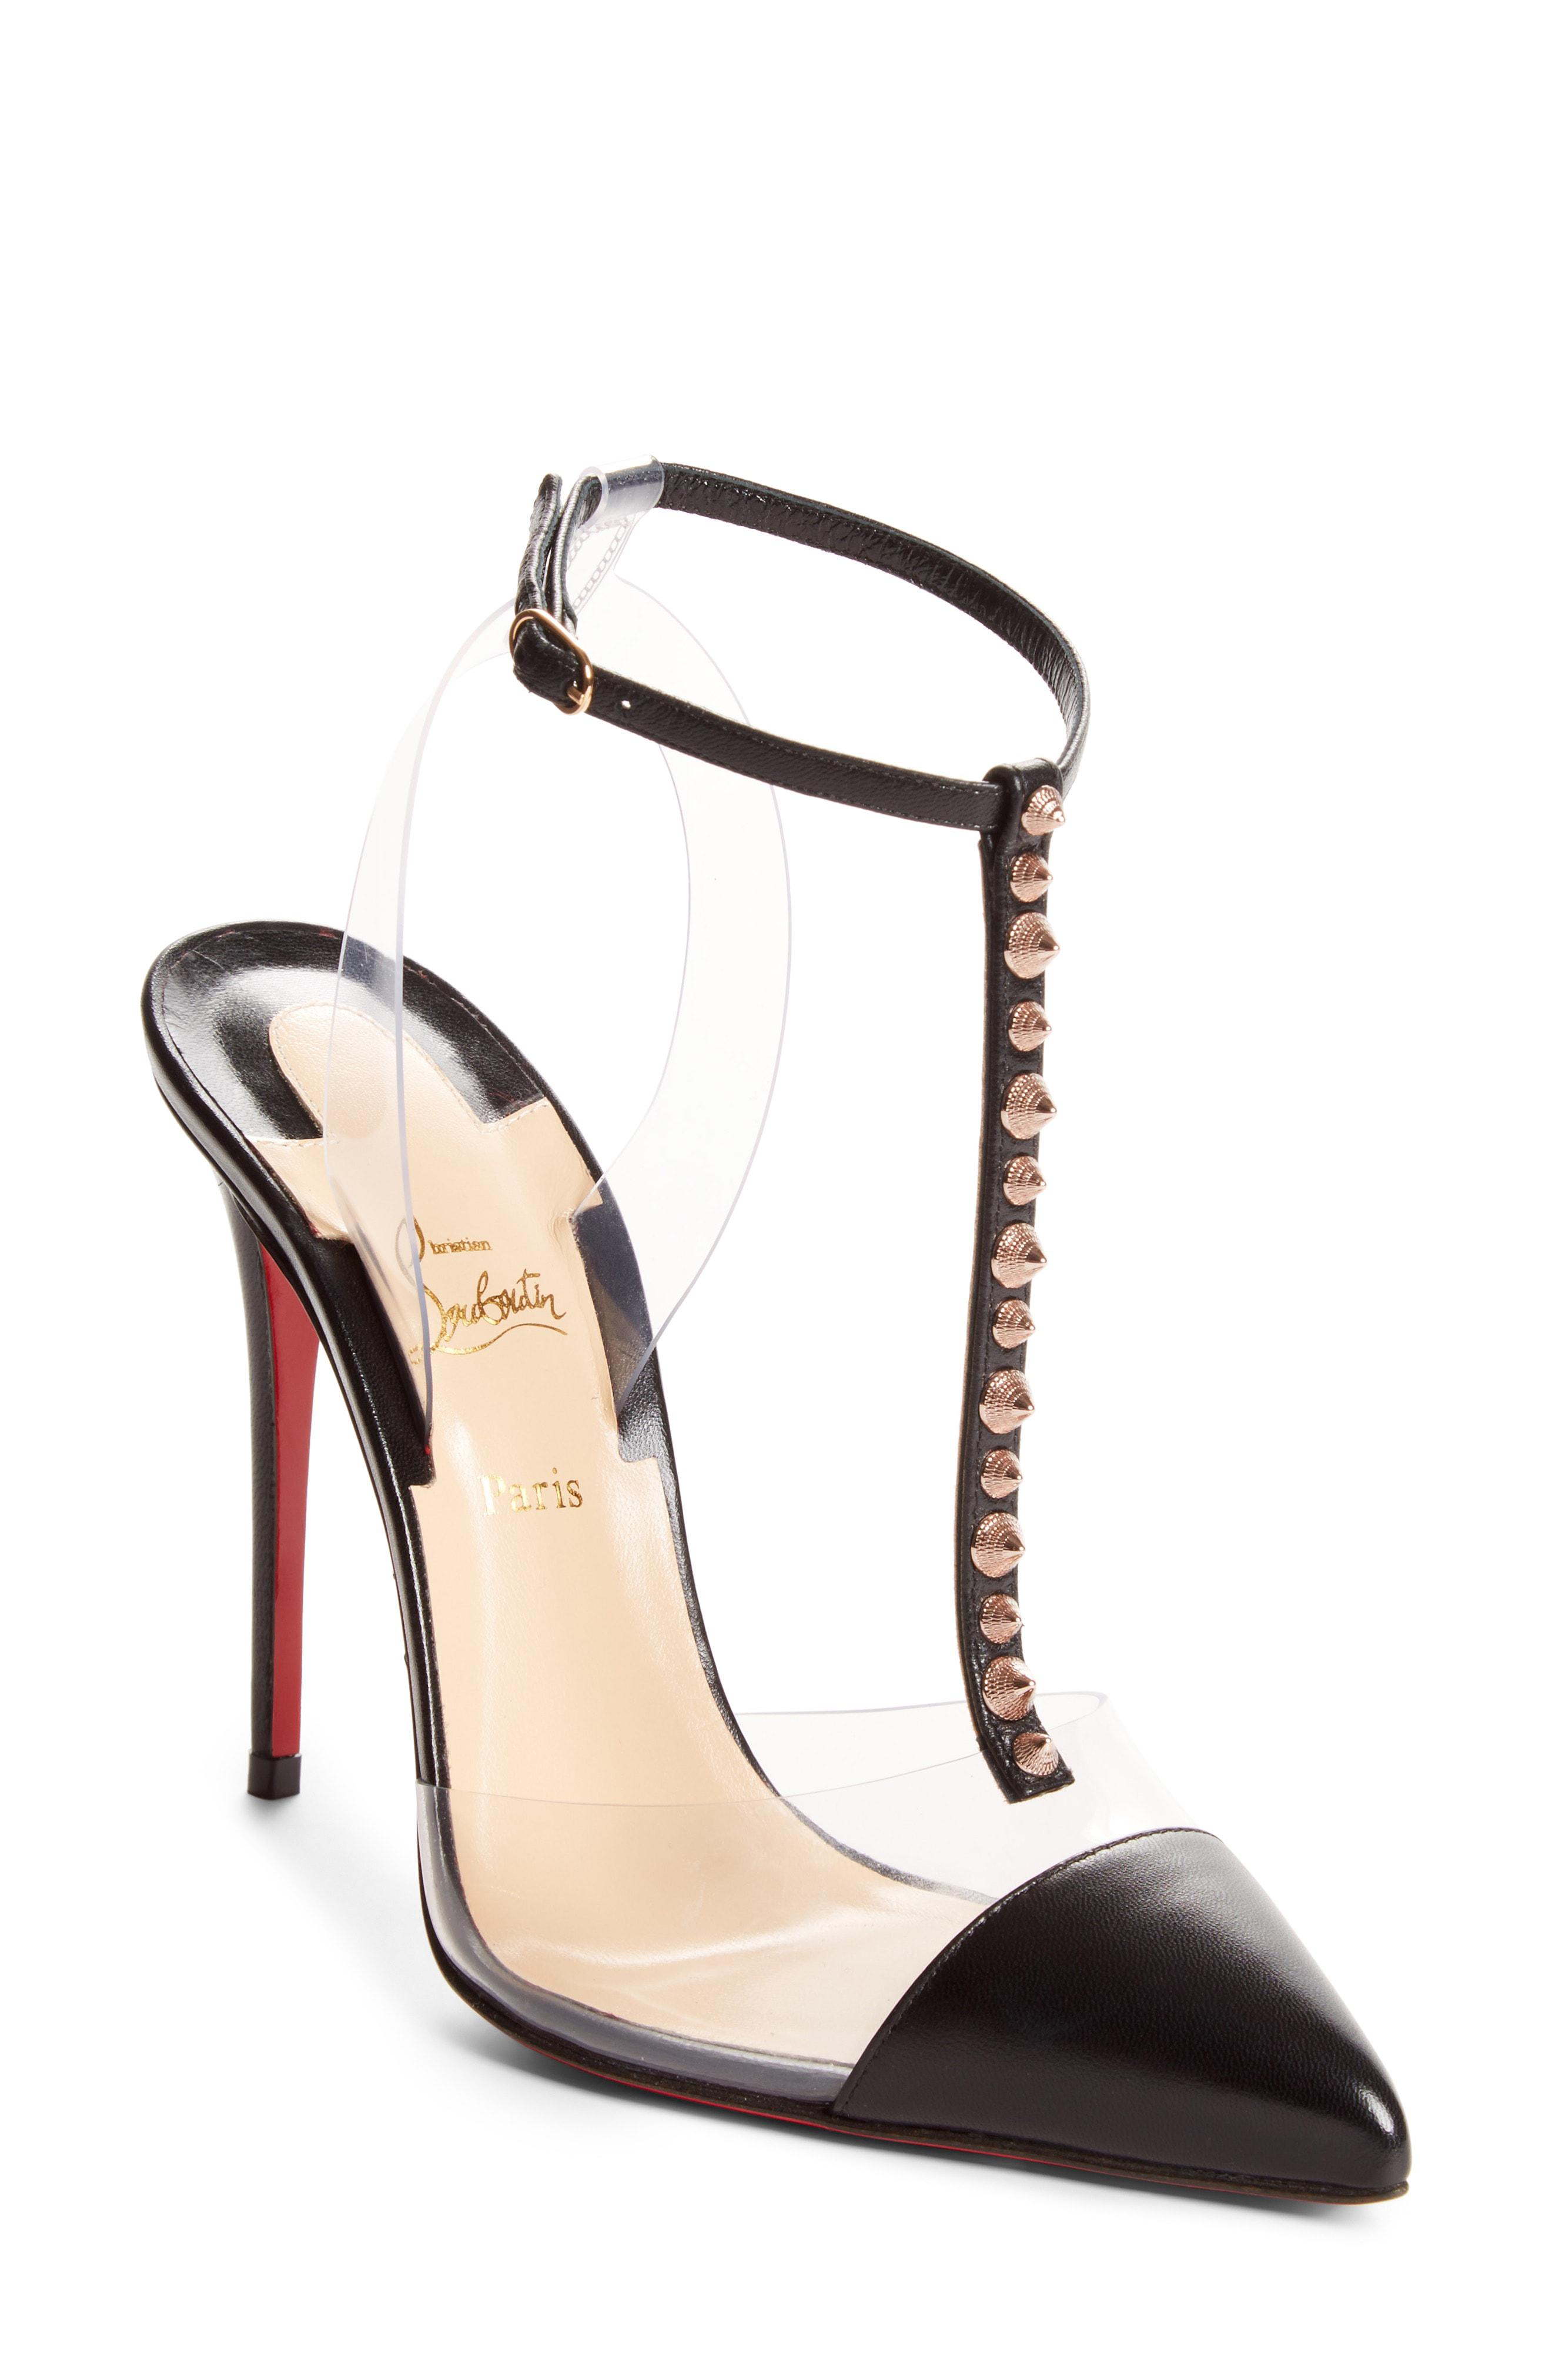 Lyst - Christian Louboutin Nosy Spikes Pvc Pump in Metallic 519140238a